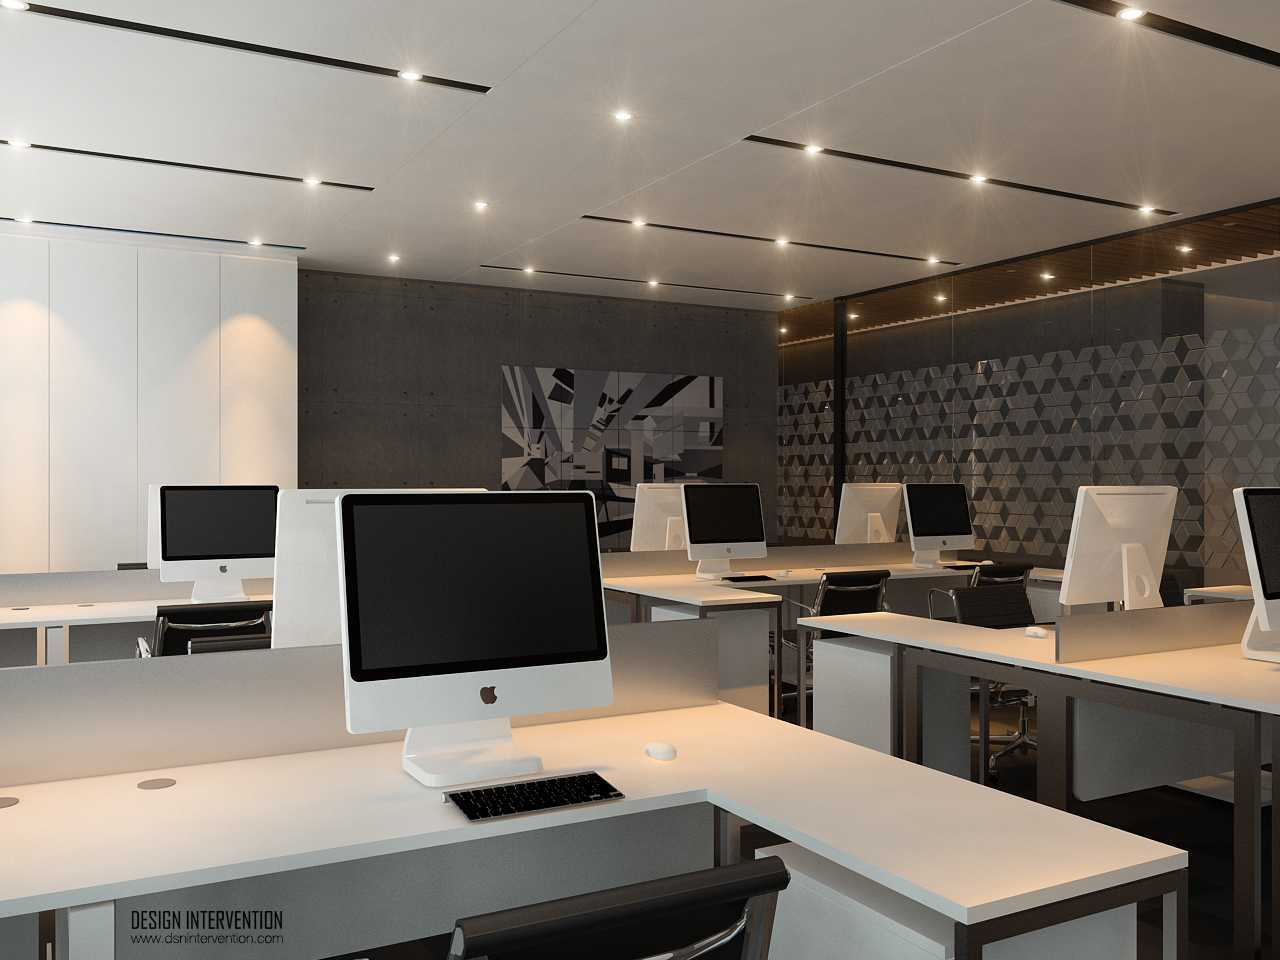 Design Intervention Mitsubishi Hq Office Tebet Tebet General-Working-Area-View-2   14980